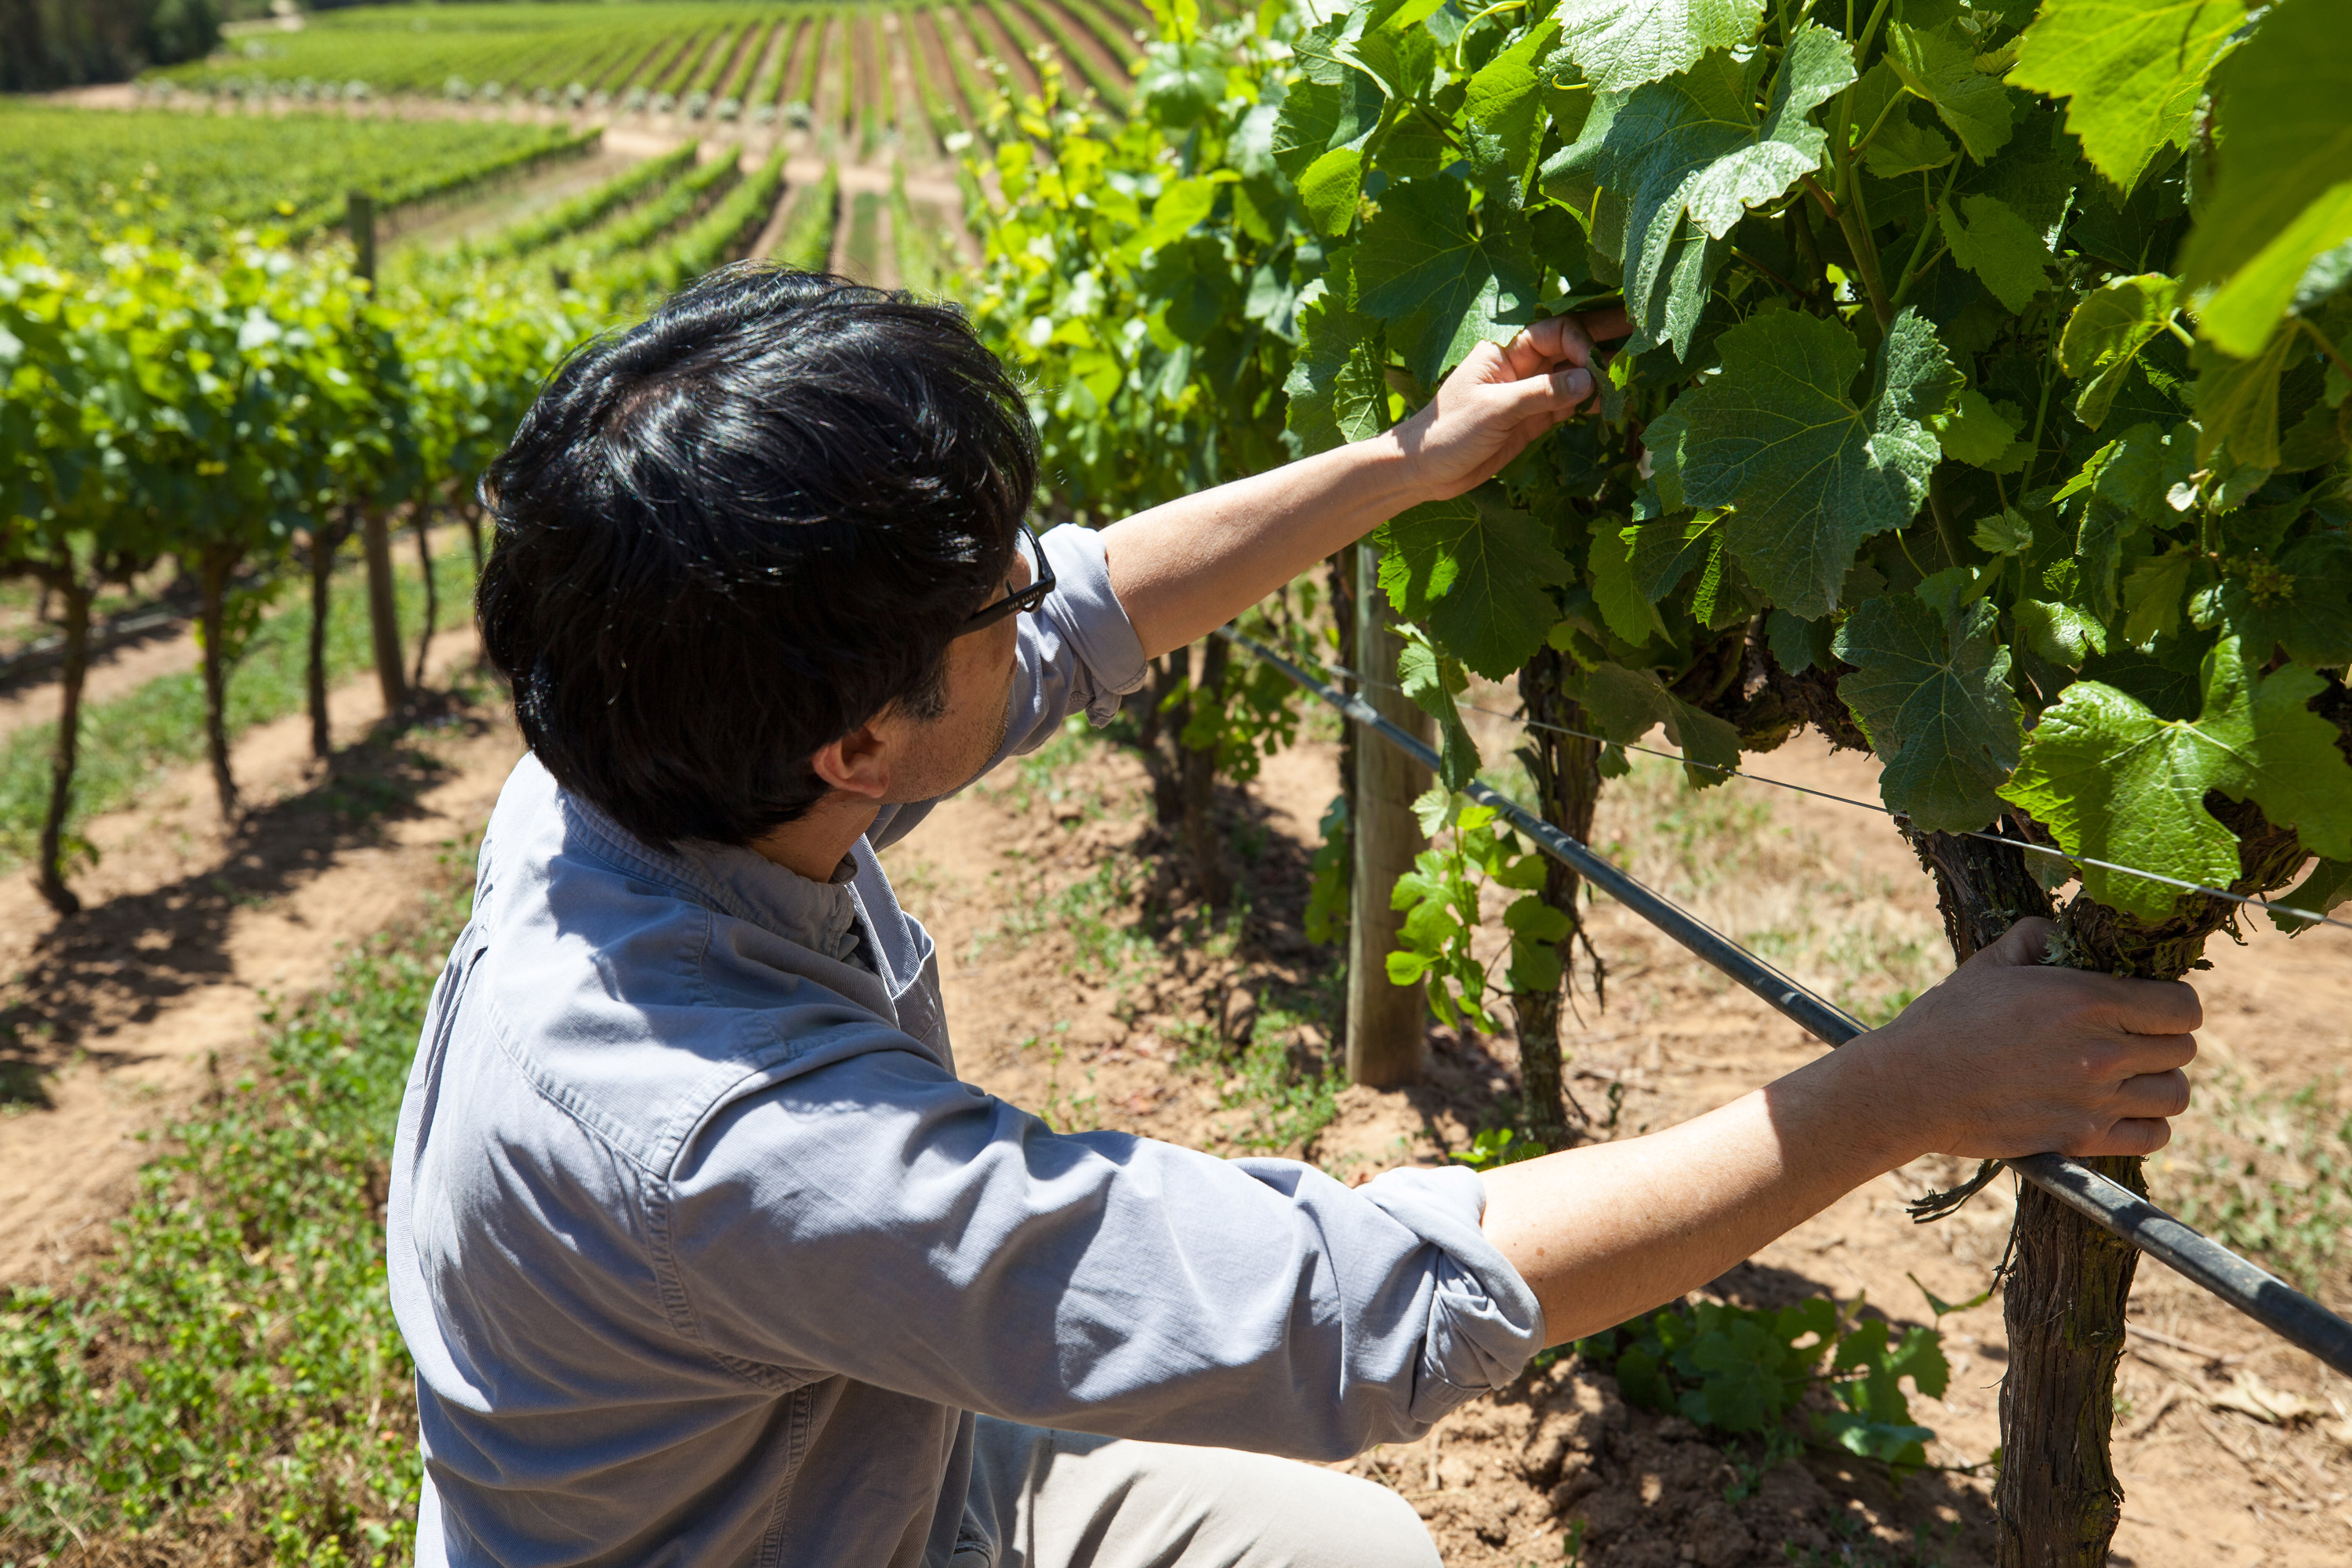 Byron inspecting vines during a routine vineyard check this past spring.